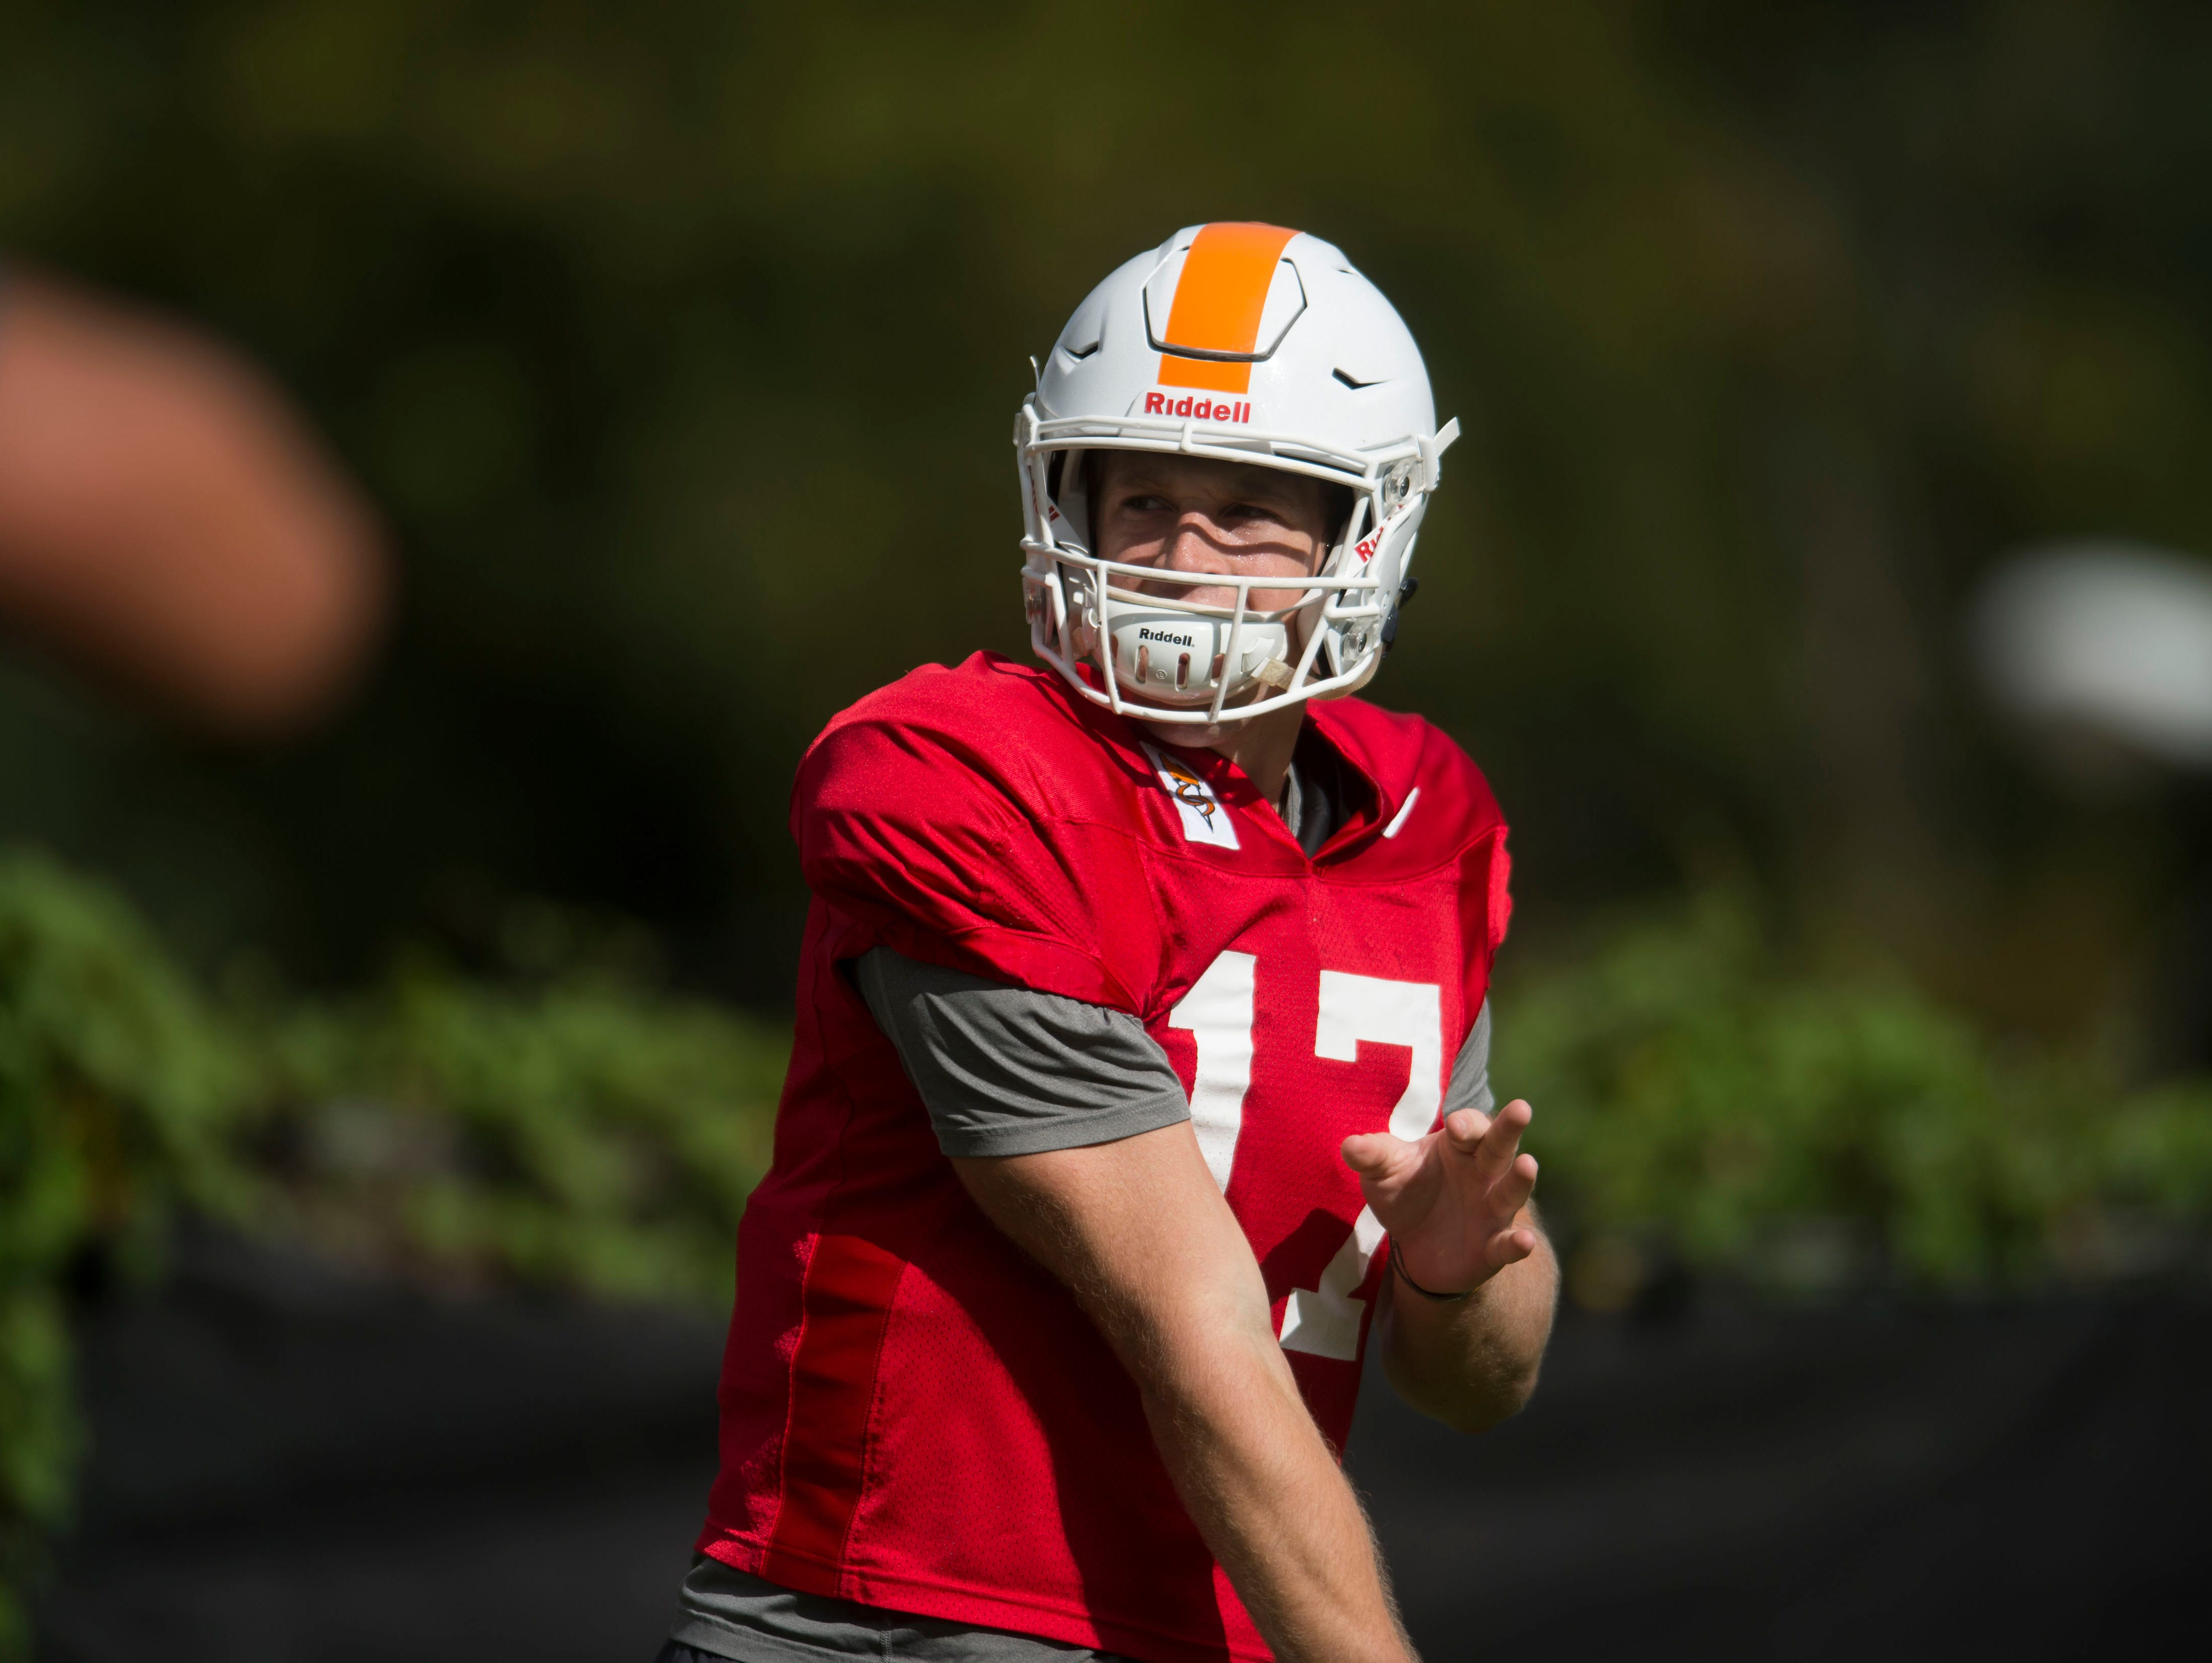 Tennessee quarterback Will McBride (17) throws the ball during University of Tennessee fall football practice at Anderson Training Facility in Knoxville, Tenn. on Tuesday, Sept. 12, 2017.